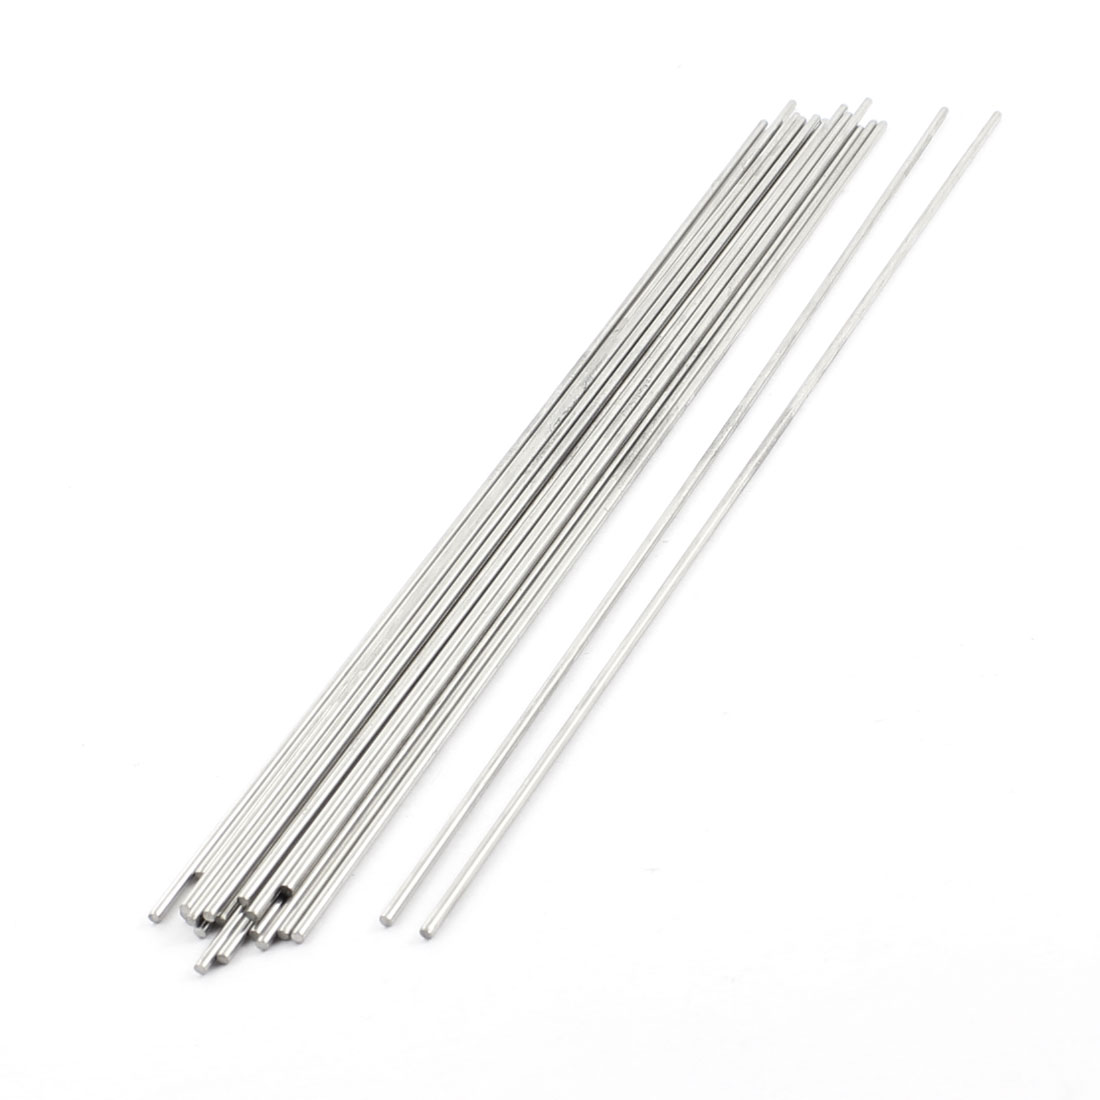 20Pcs 2mm Dia 250mm Length Stainless Steel Round Rod Shaft for RC Toy Car